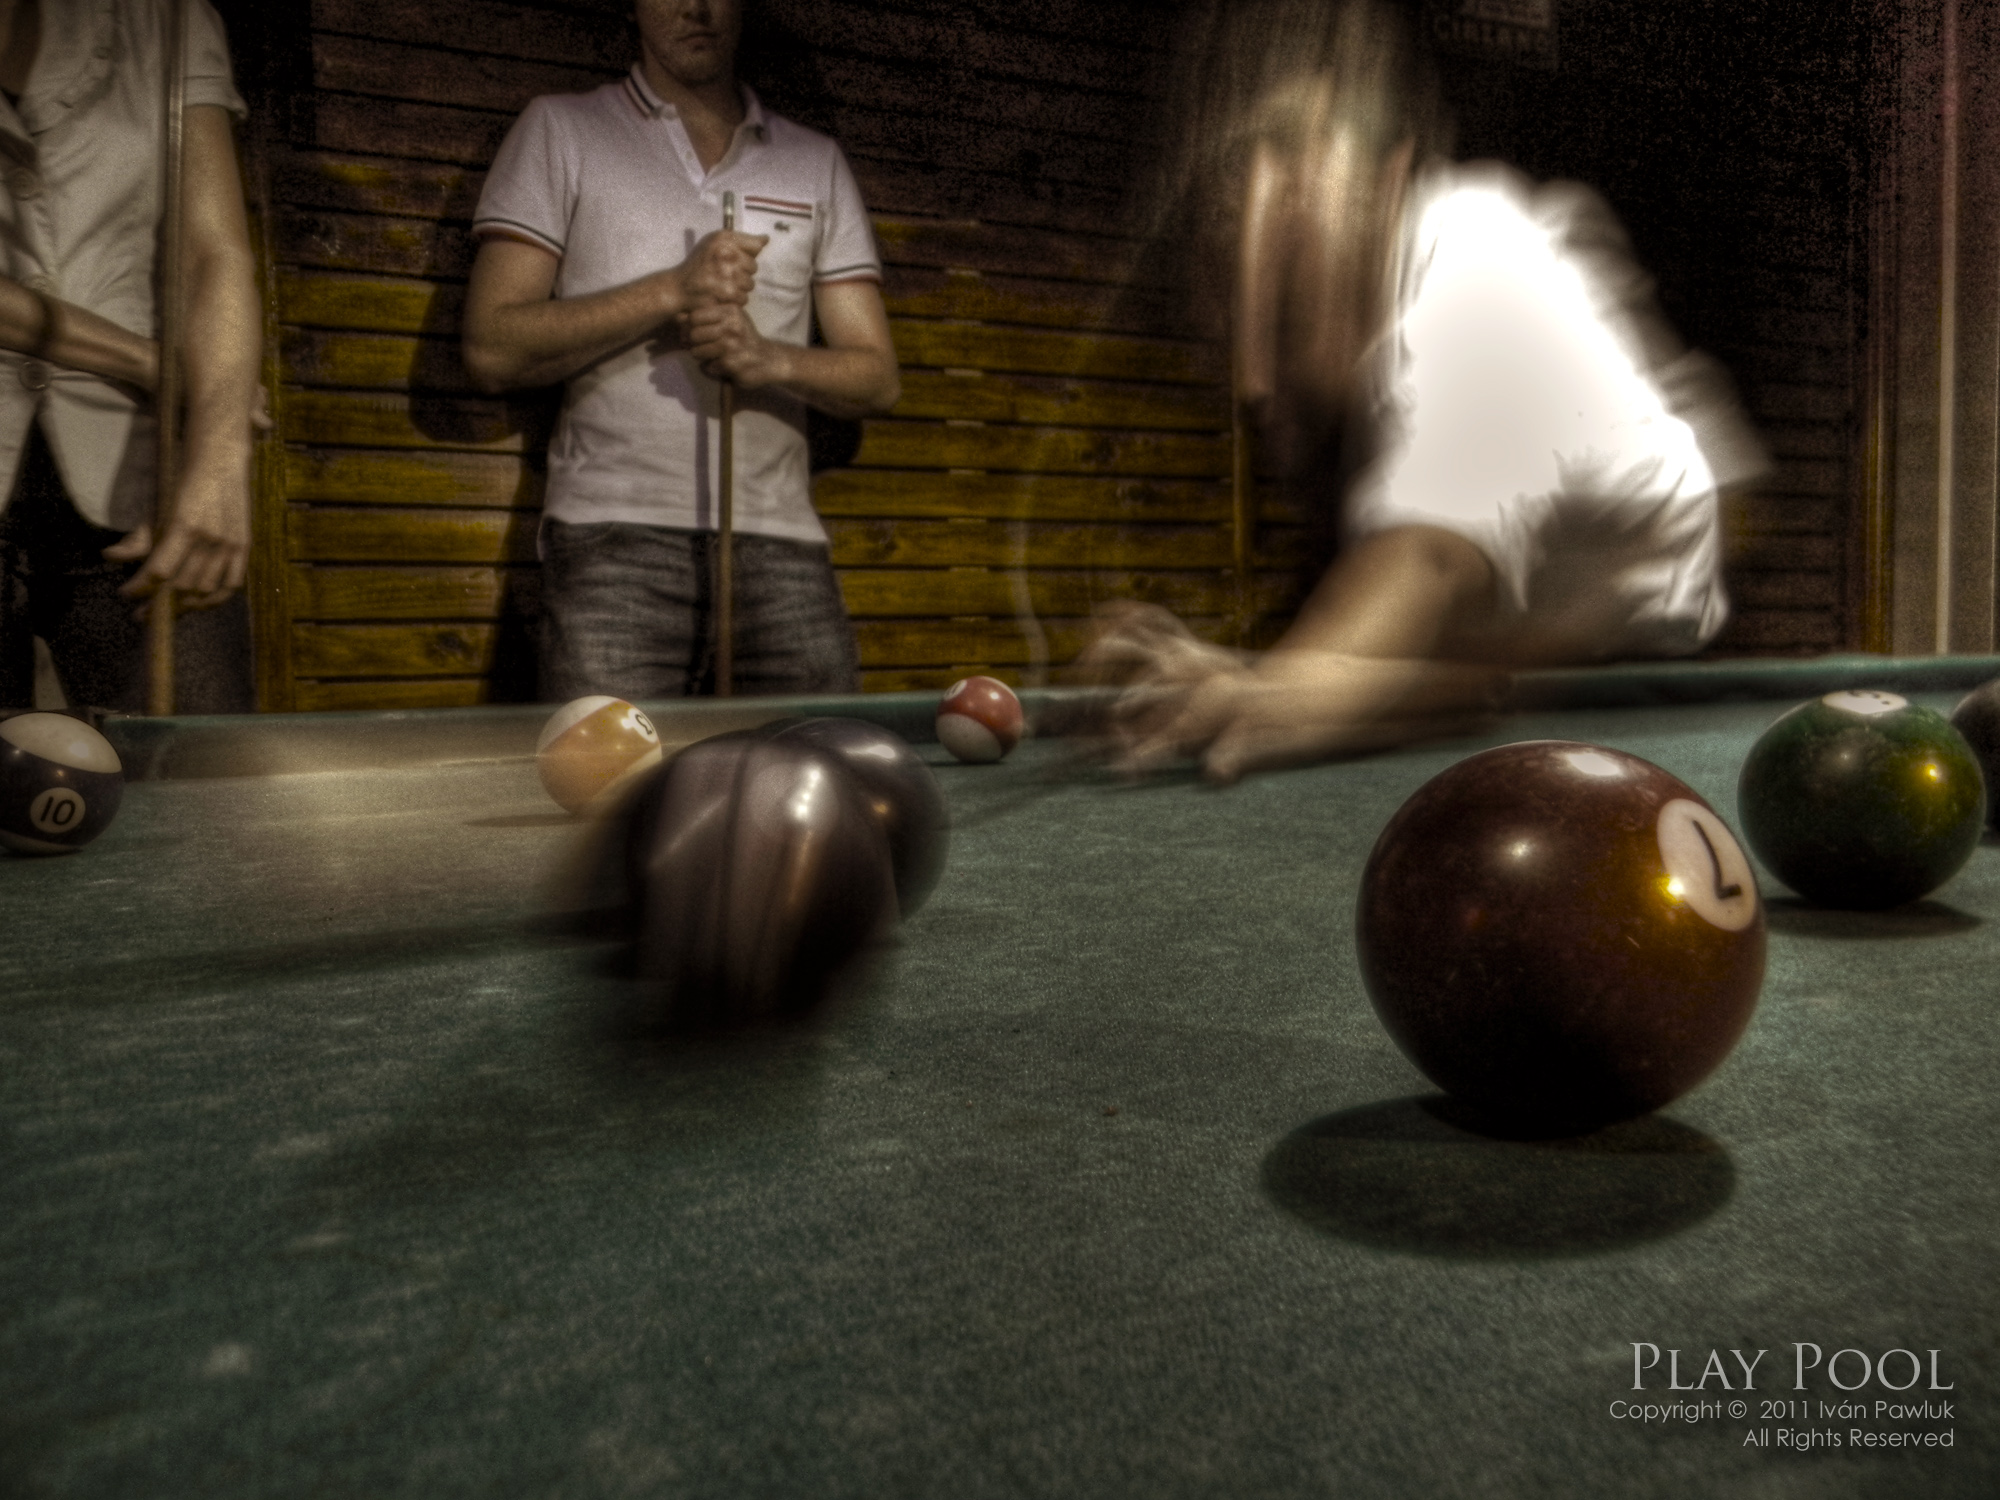 Play pool 3- HDR Photography